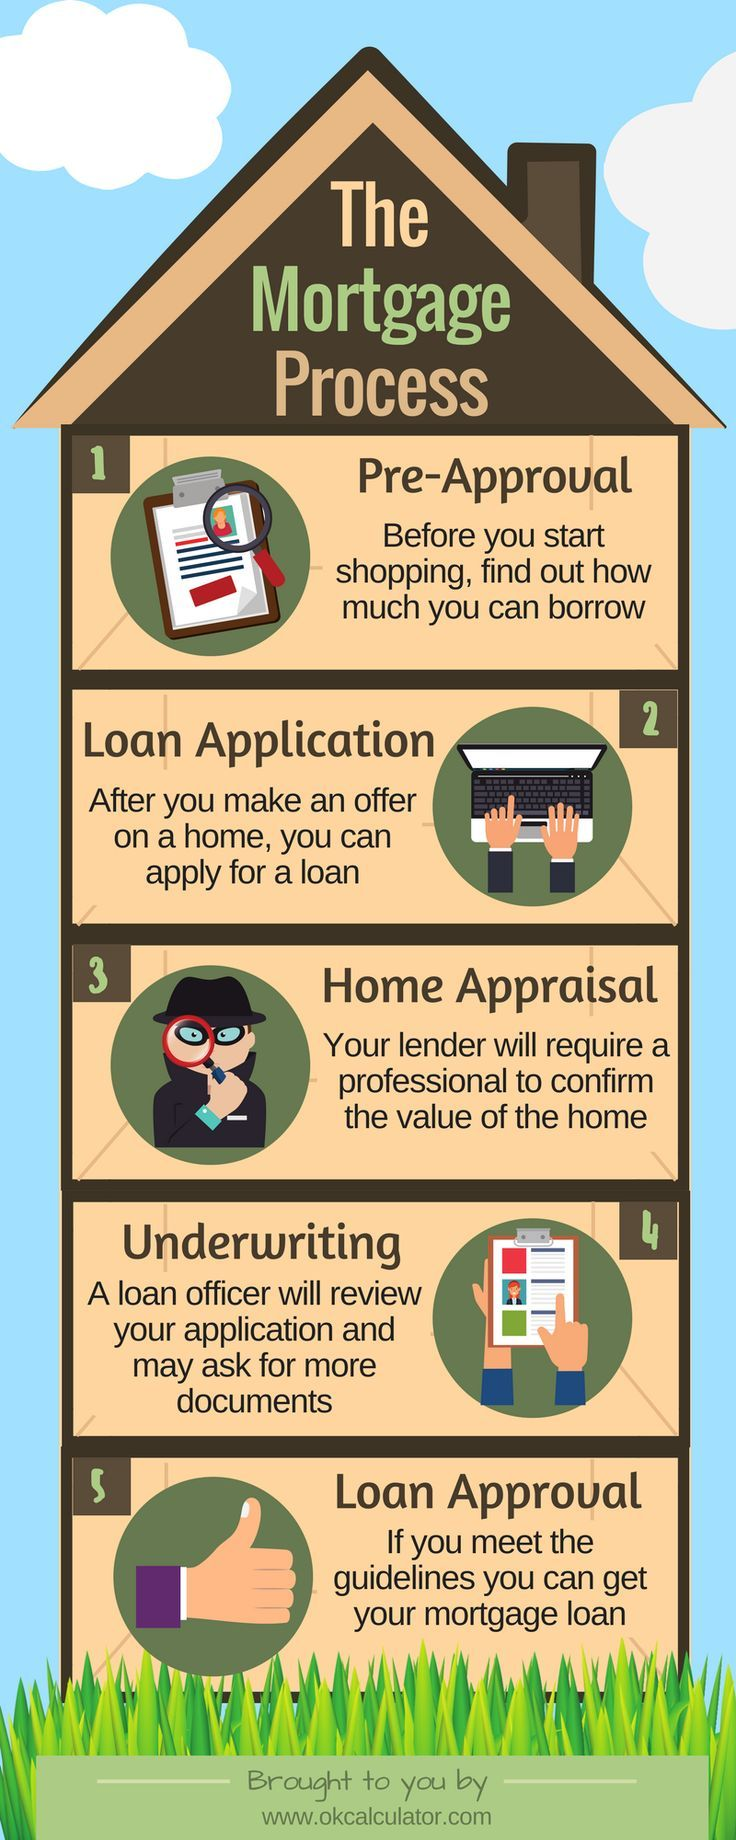 Get 35 000 Loan Now With Total Personal Loan For More Detail Visit Our Website Mortgage Loans Loan Loans For Bad Credit